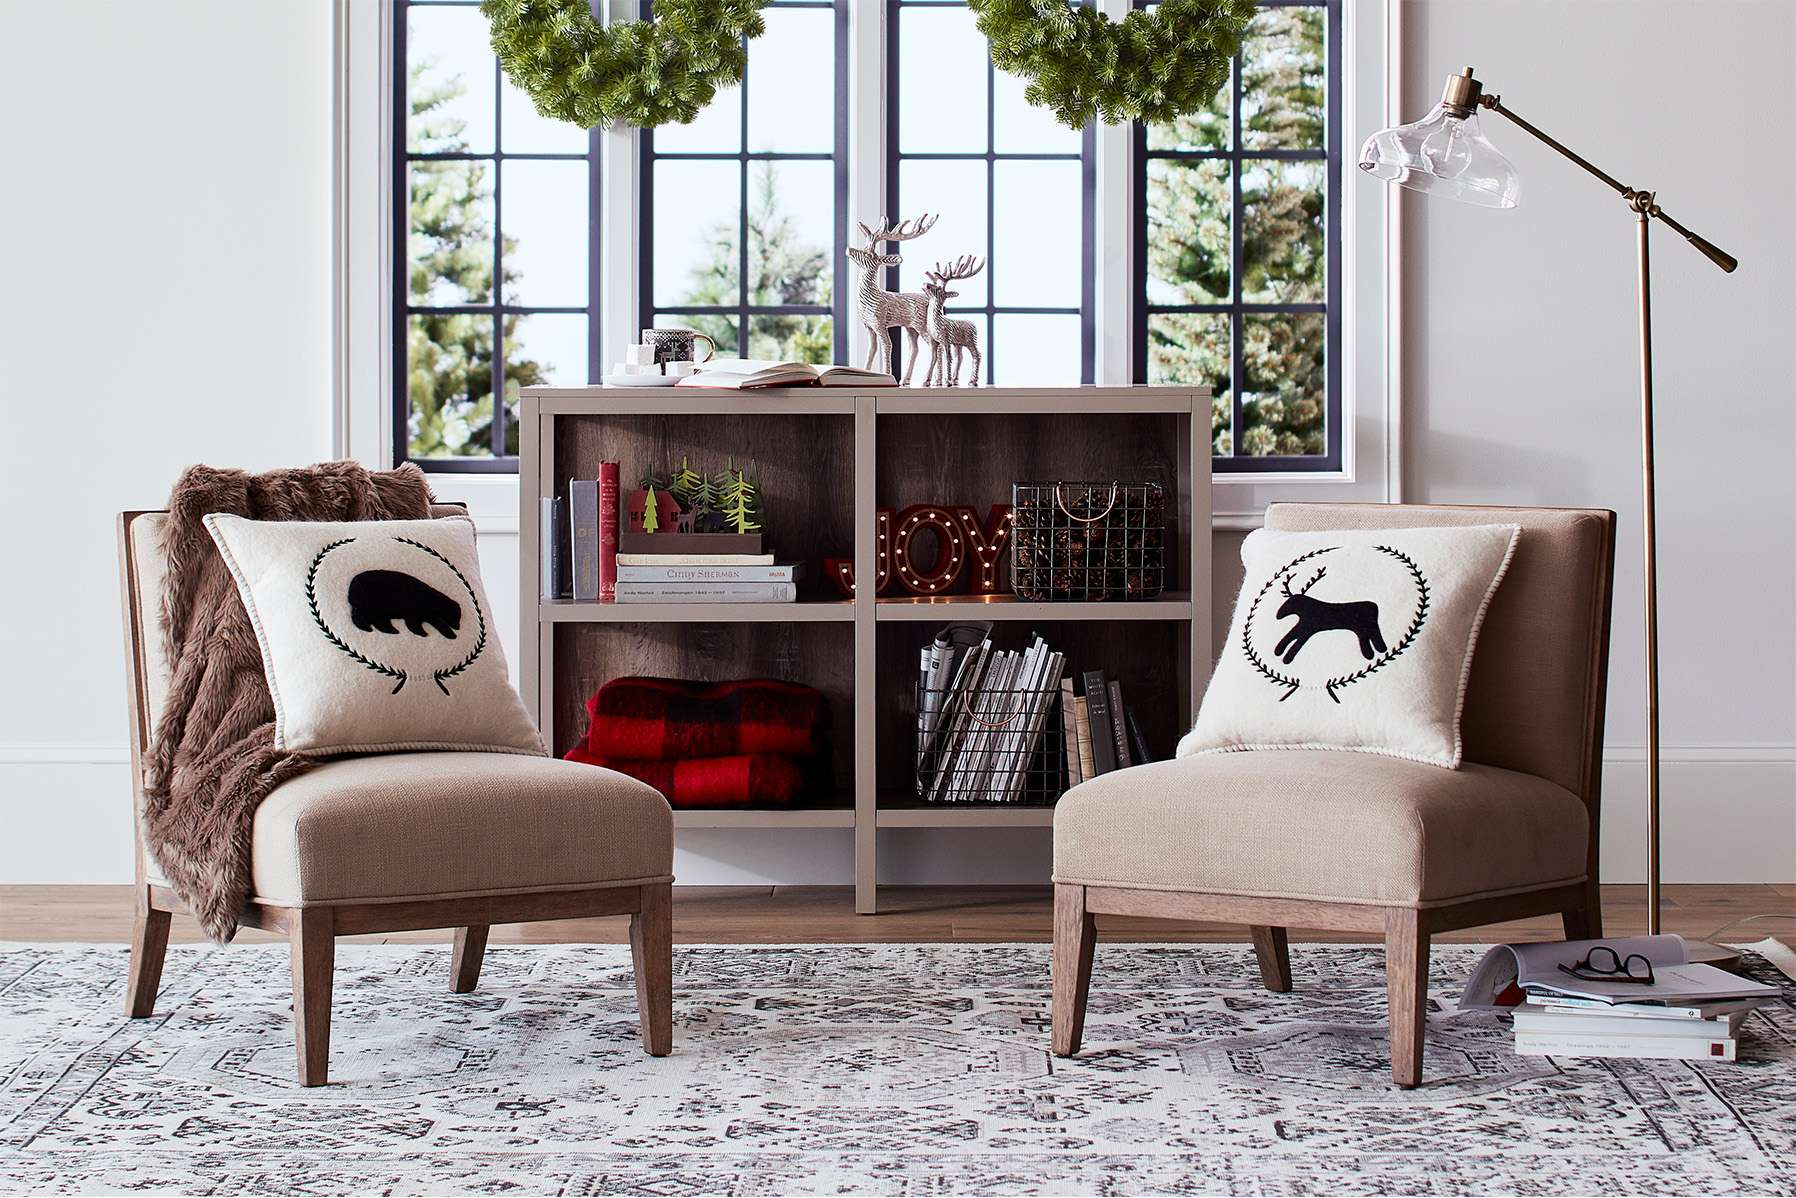 Threshold Holiday decor  Threshold living room furniture. Furniture Store   Target